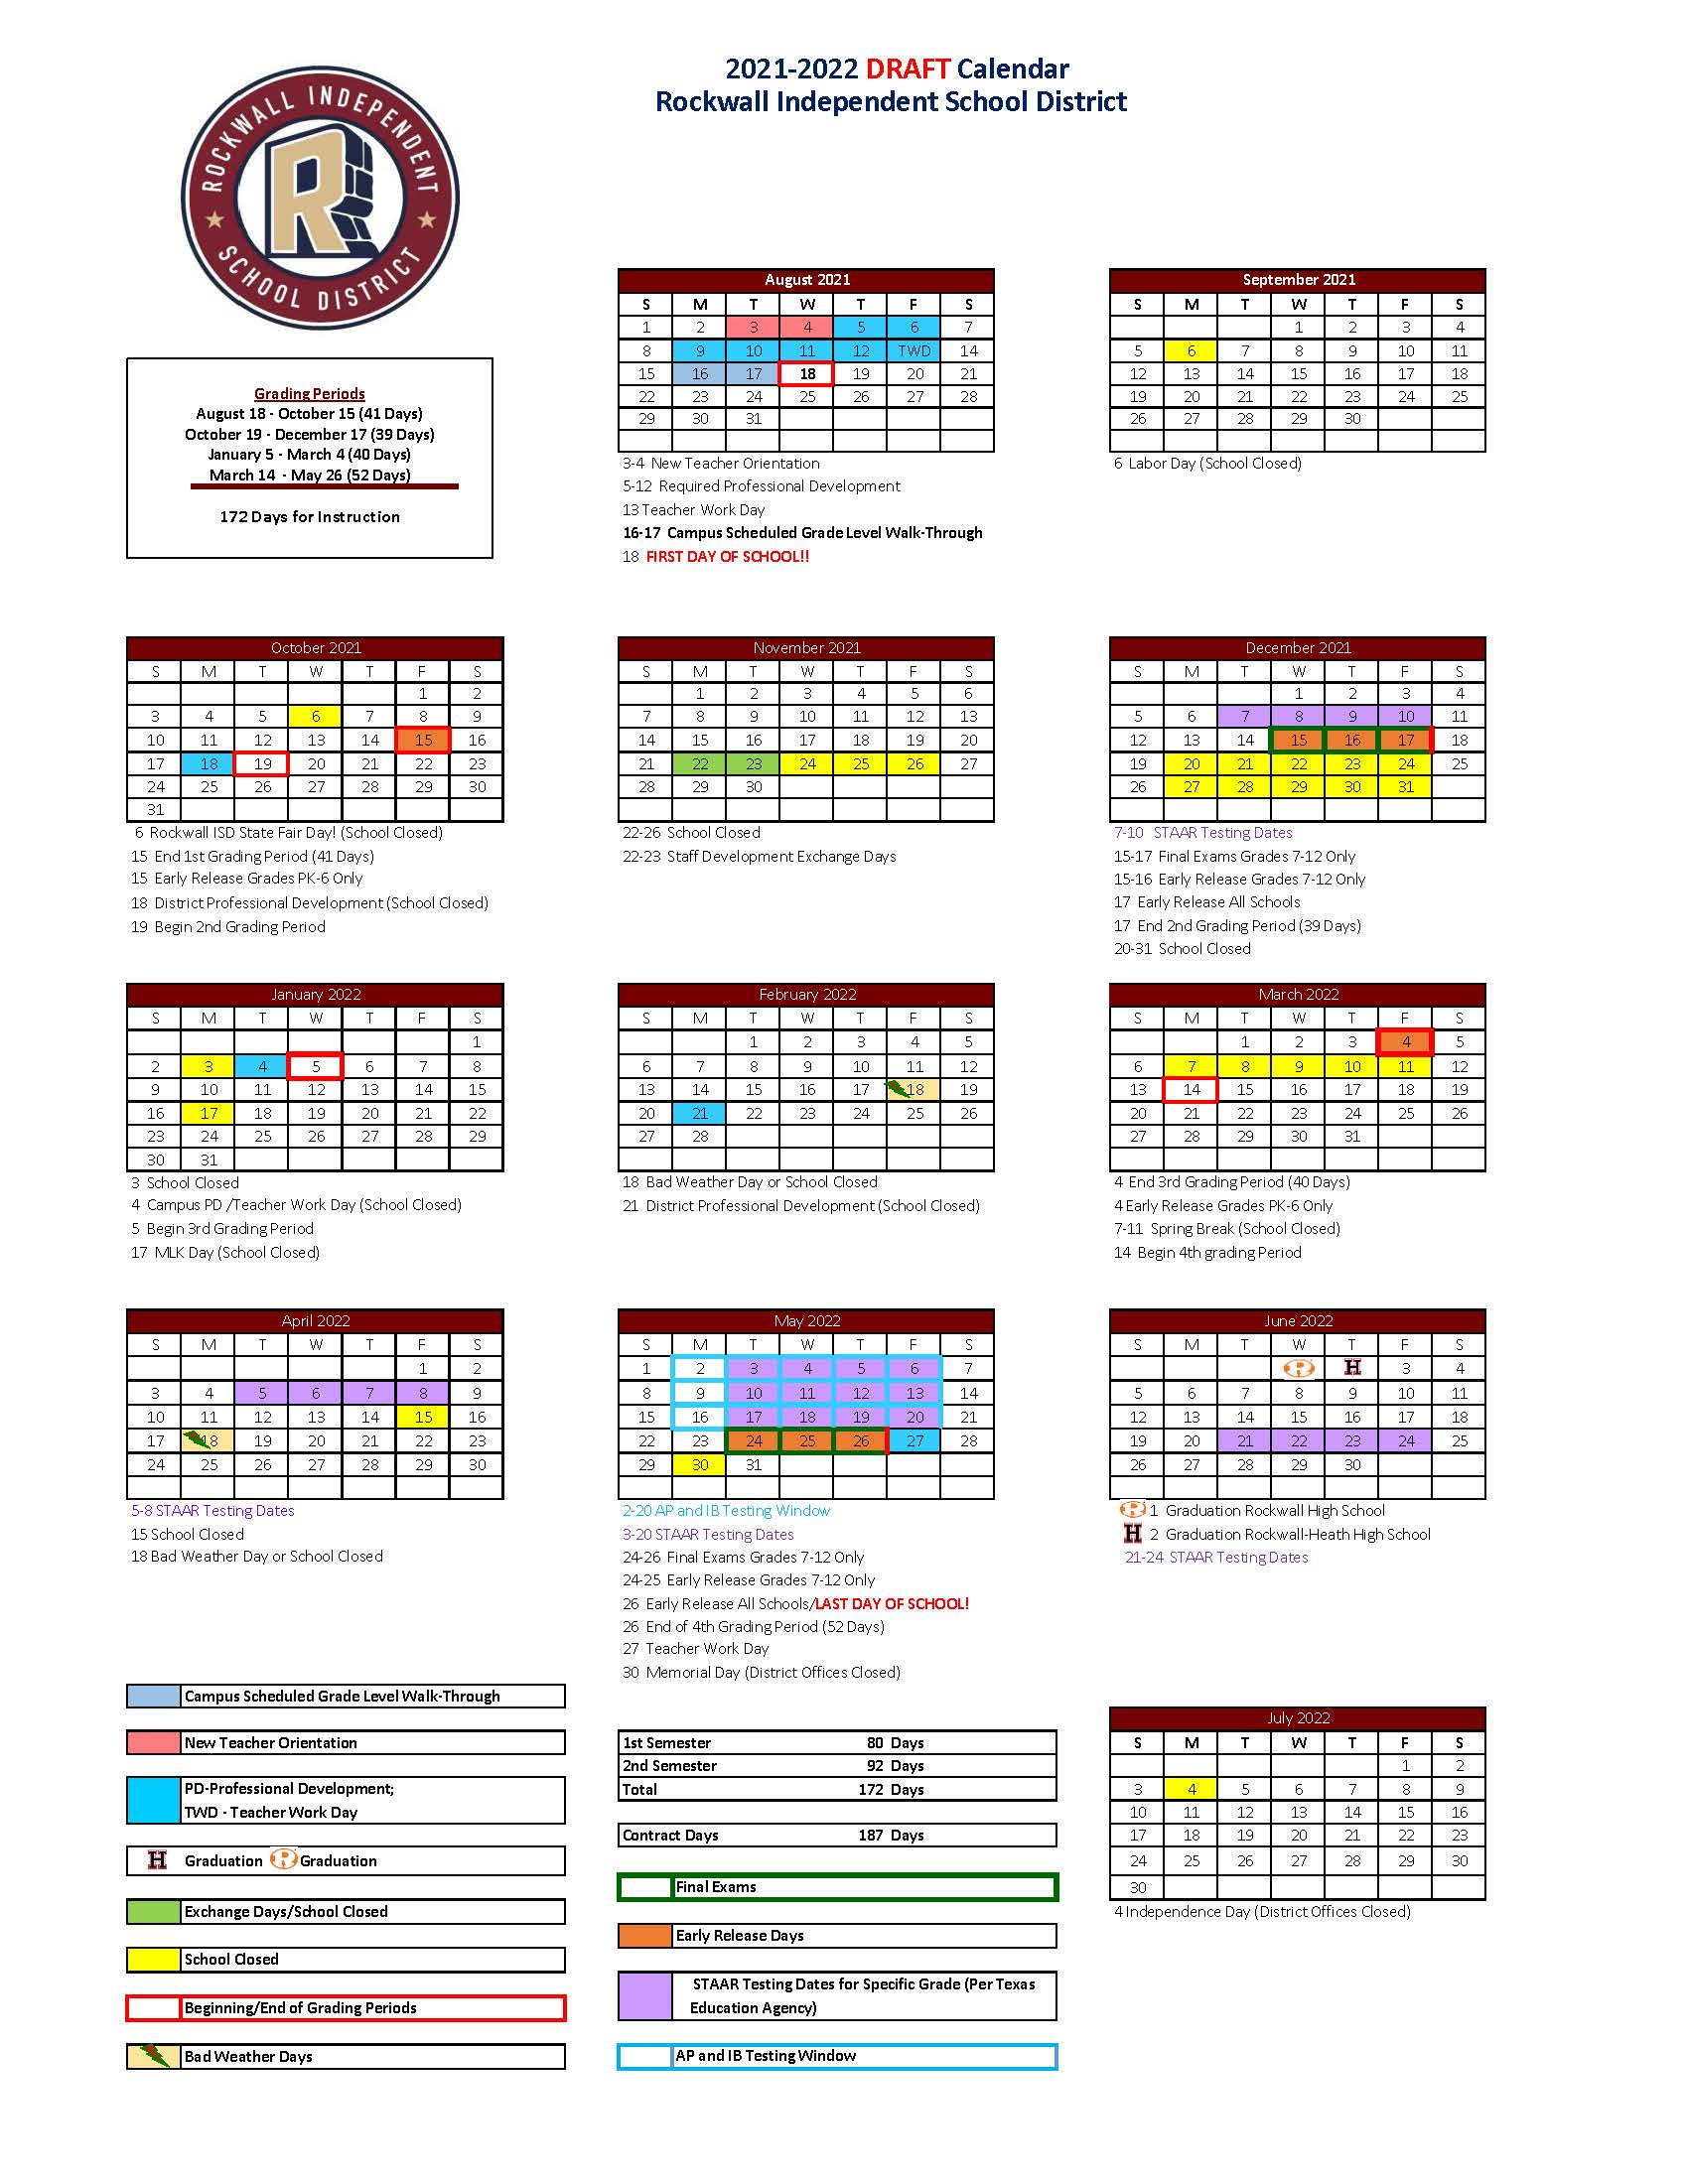 Pictures of 2021-2022 Testing Calendar